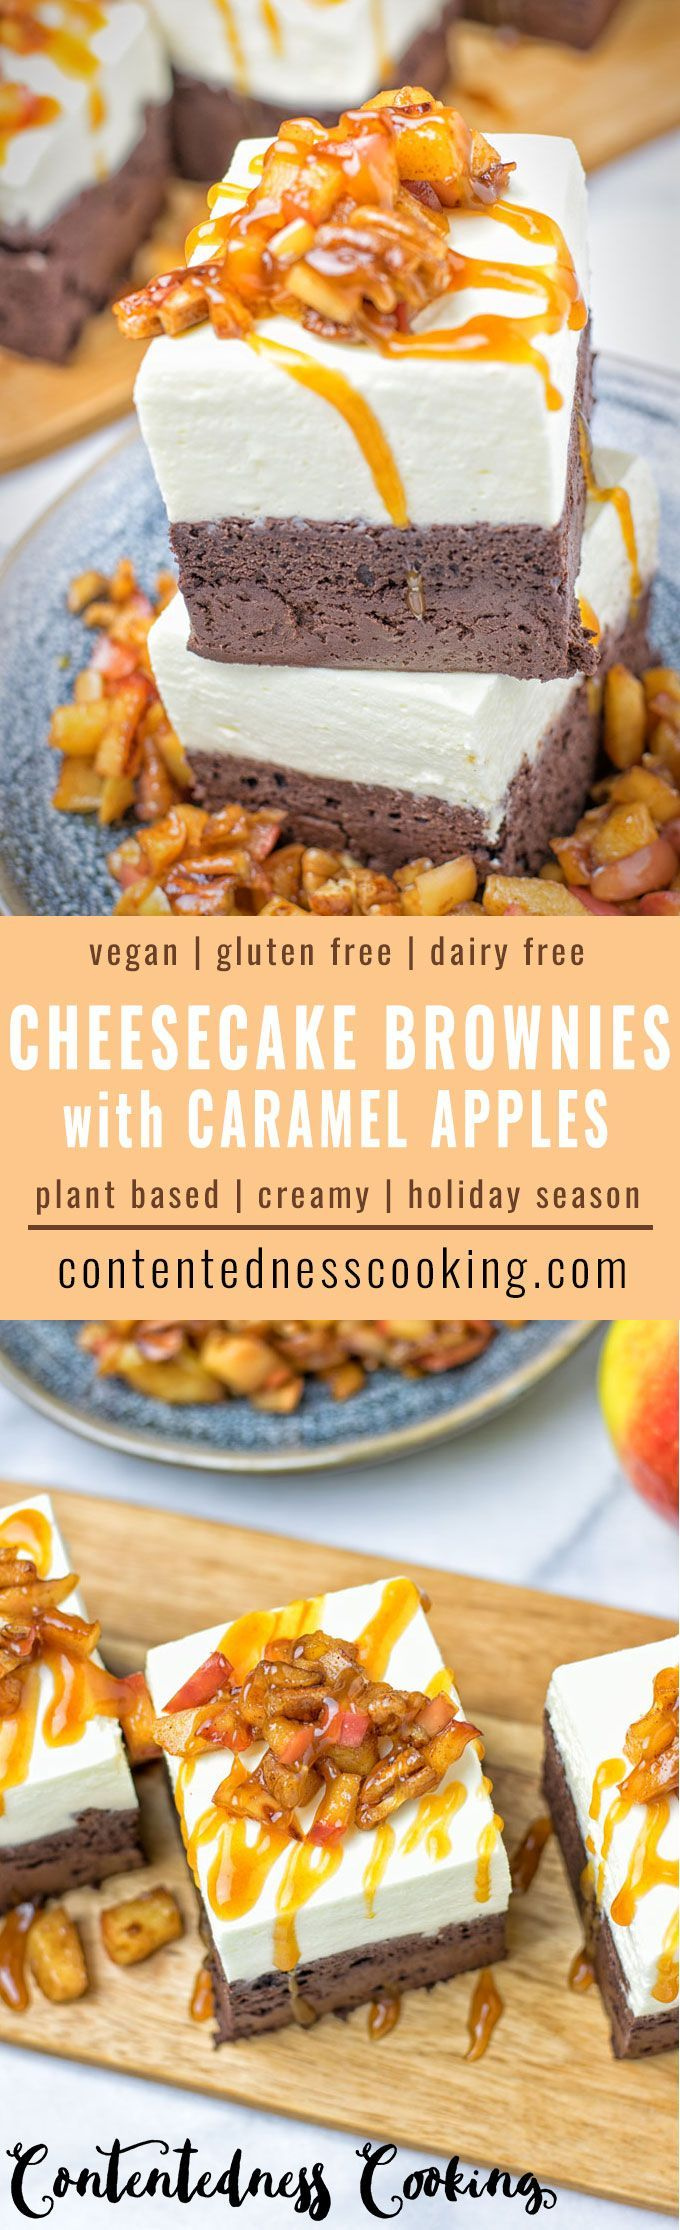 Tasty Cheesecake Brownies with Caramel Apples. Vegan, quick & easy to make, these gluten free brownies come out moist and sweet without added refined sugar. Absolutely delicious and perfect for a dessert full of fall flavors. Bring every Thanksgiving dinner to end on a high.